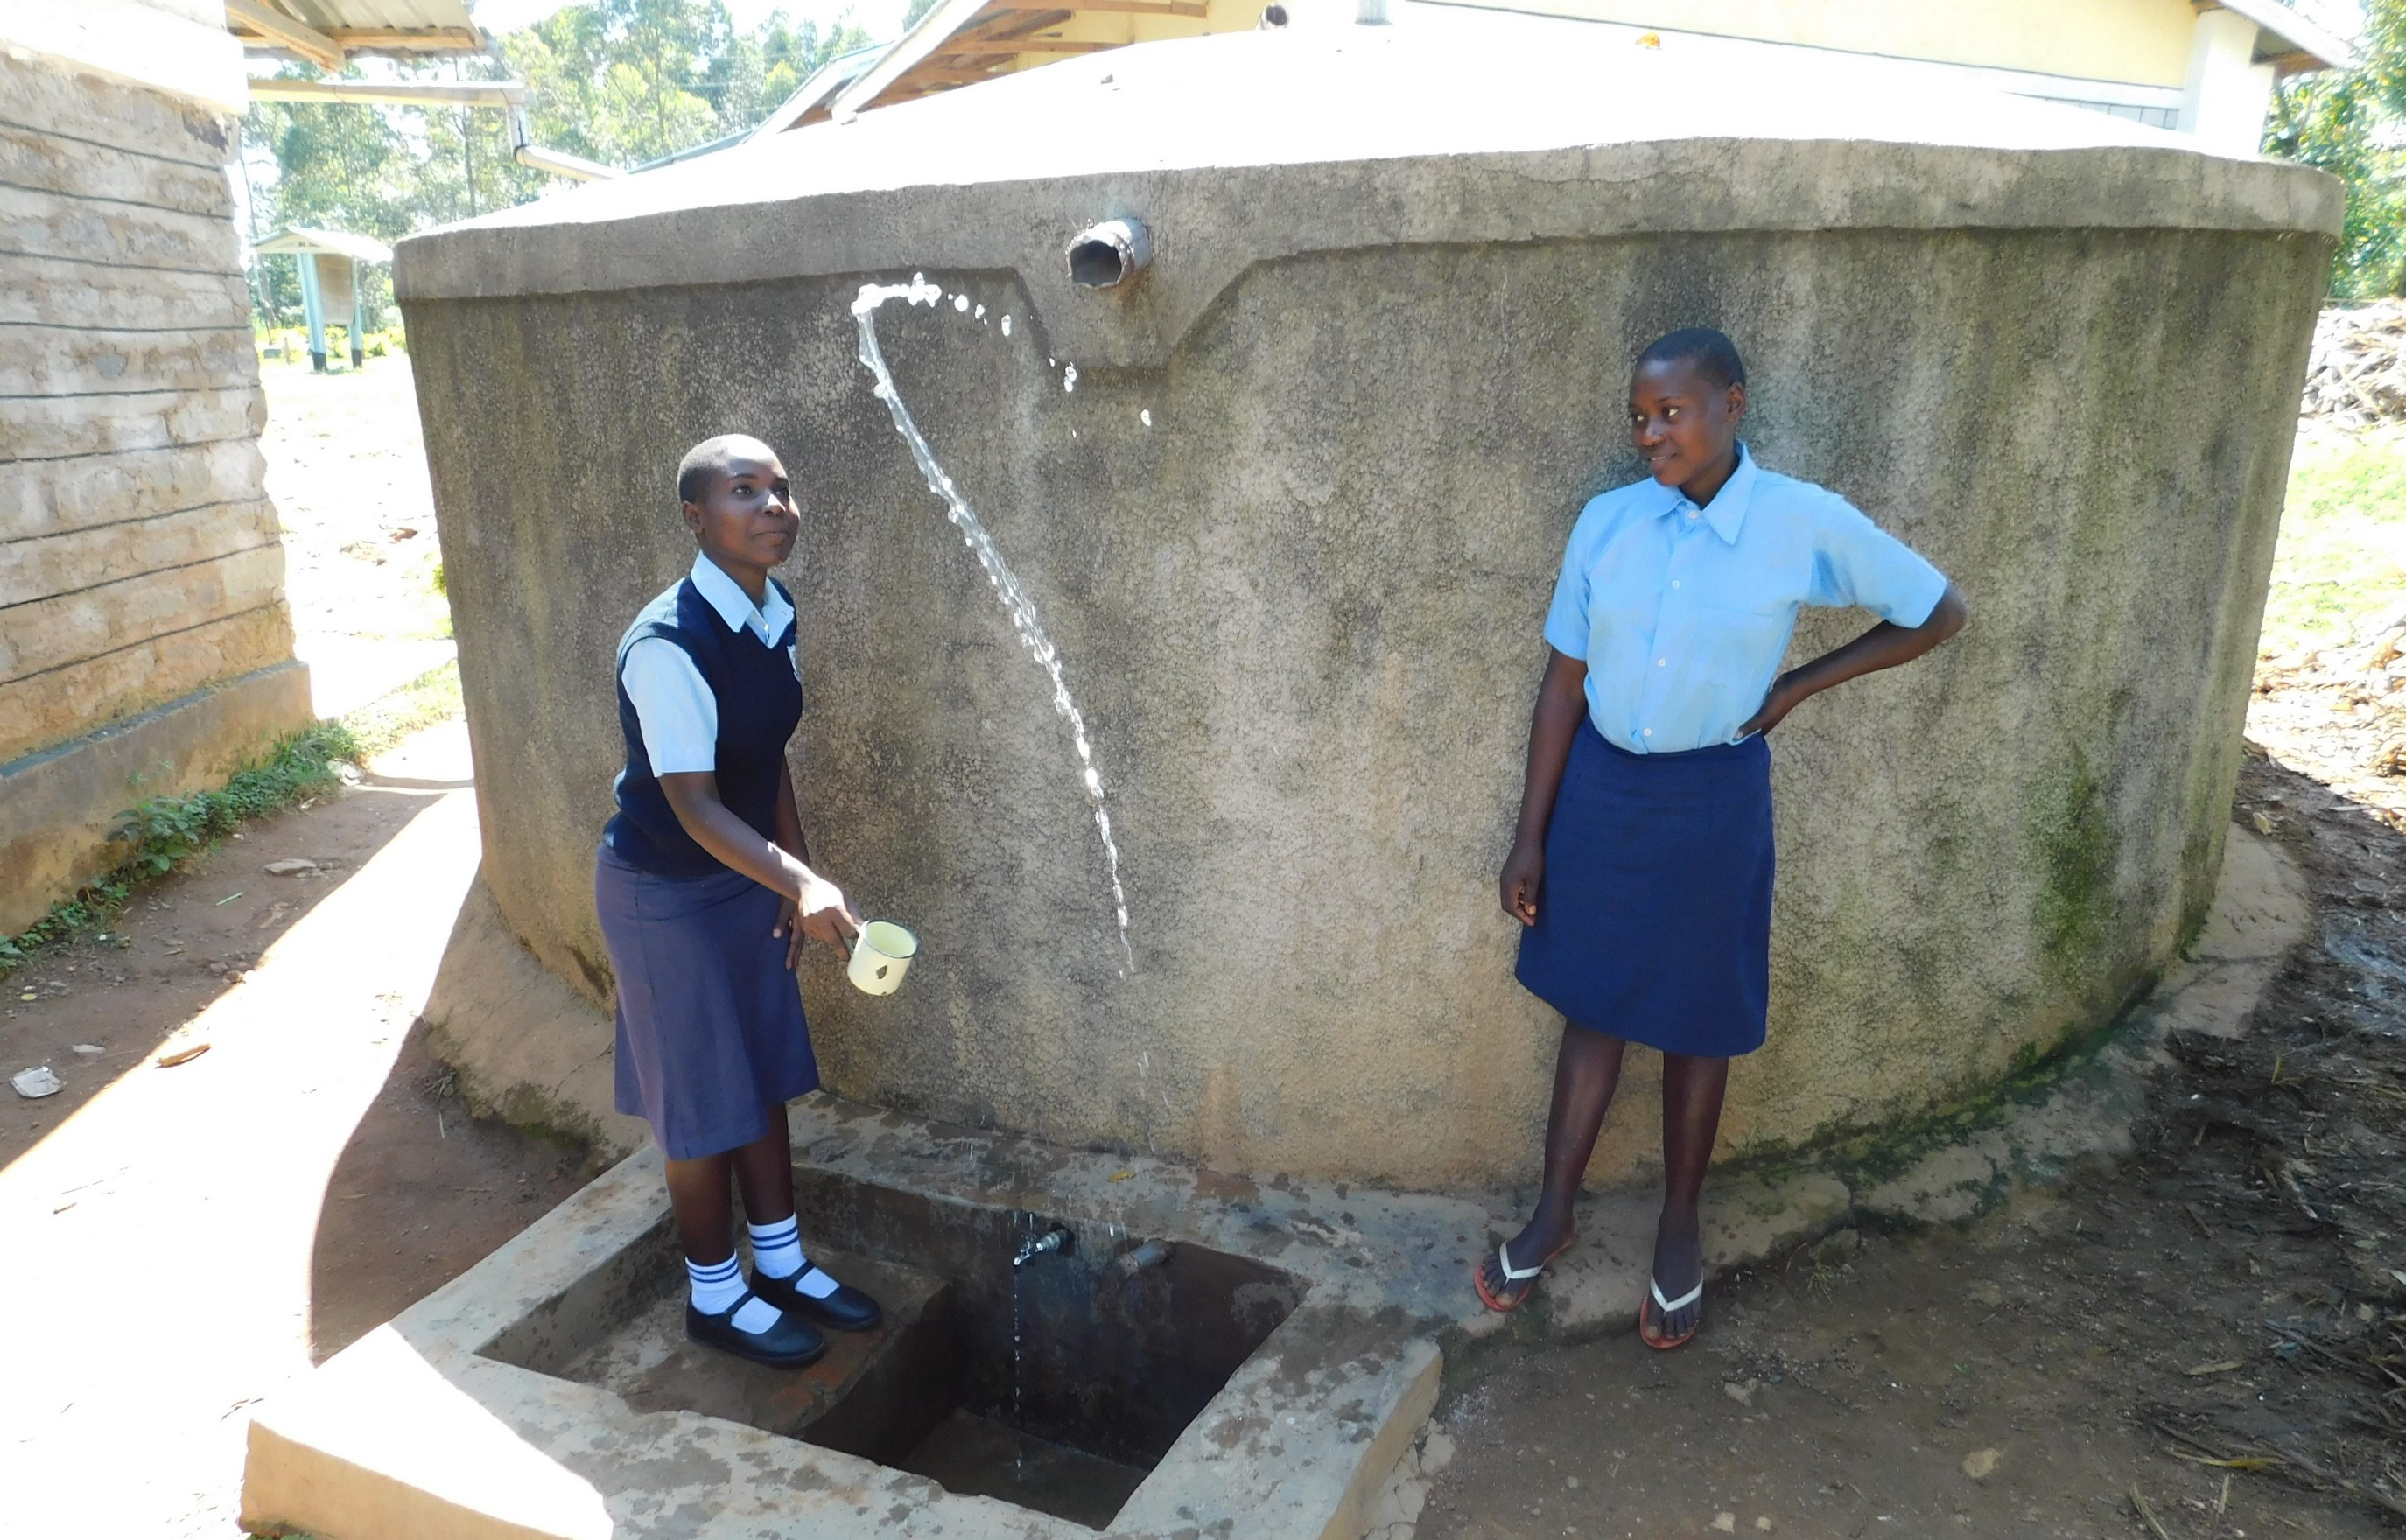 The Water Project : 2-kenya18035-having-fun-with-water